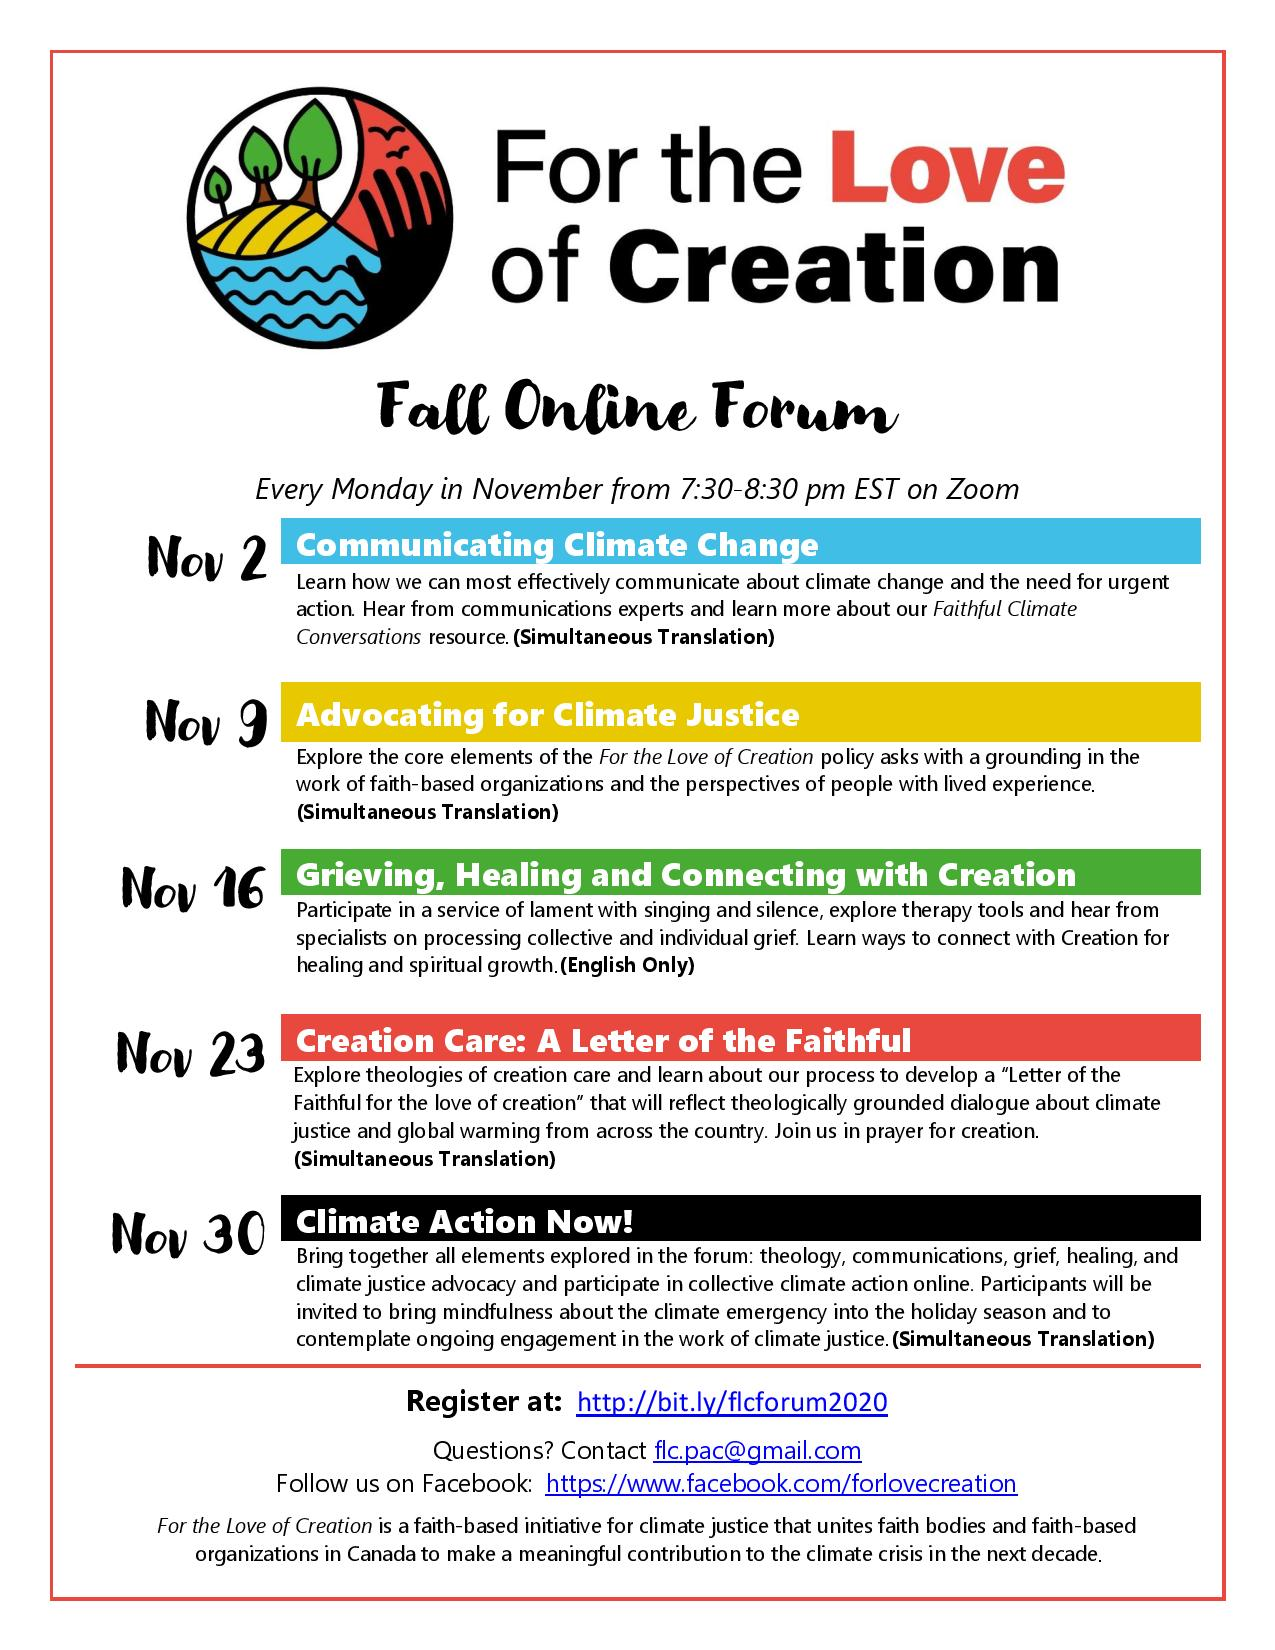 poster for fall forum on climate change